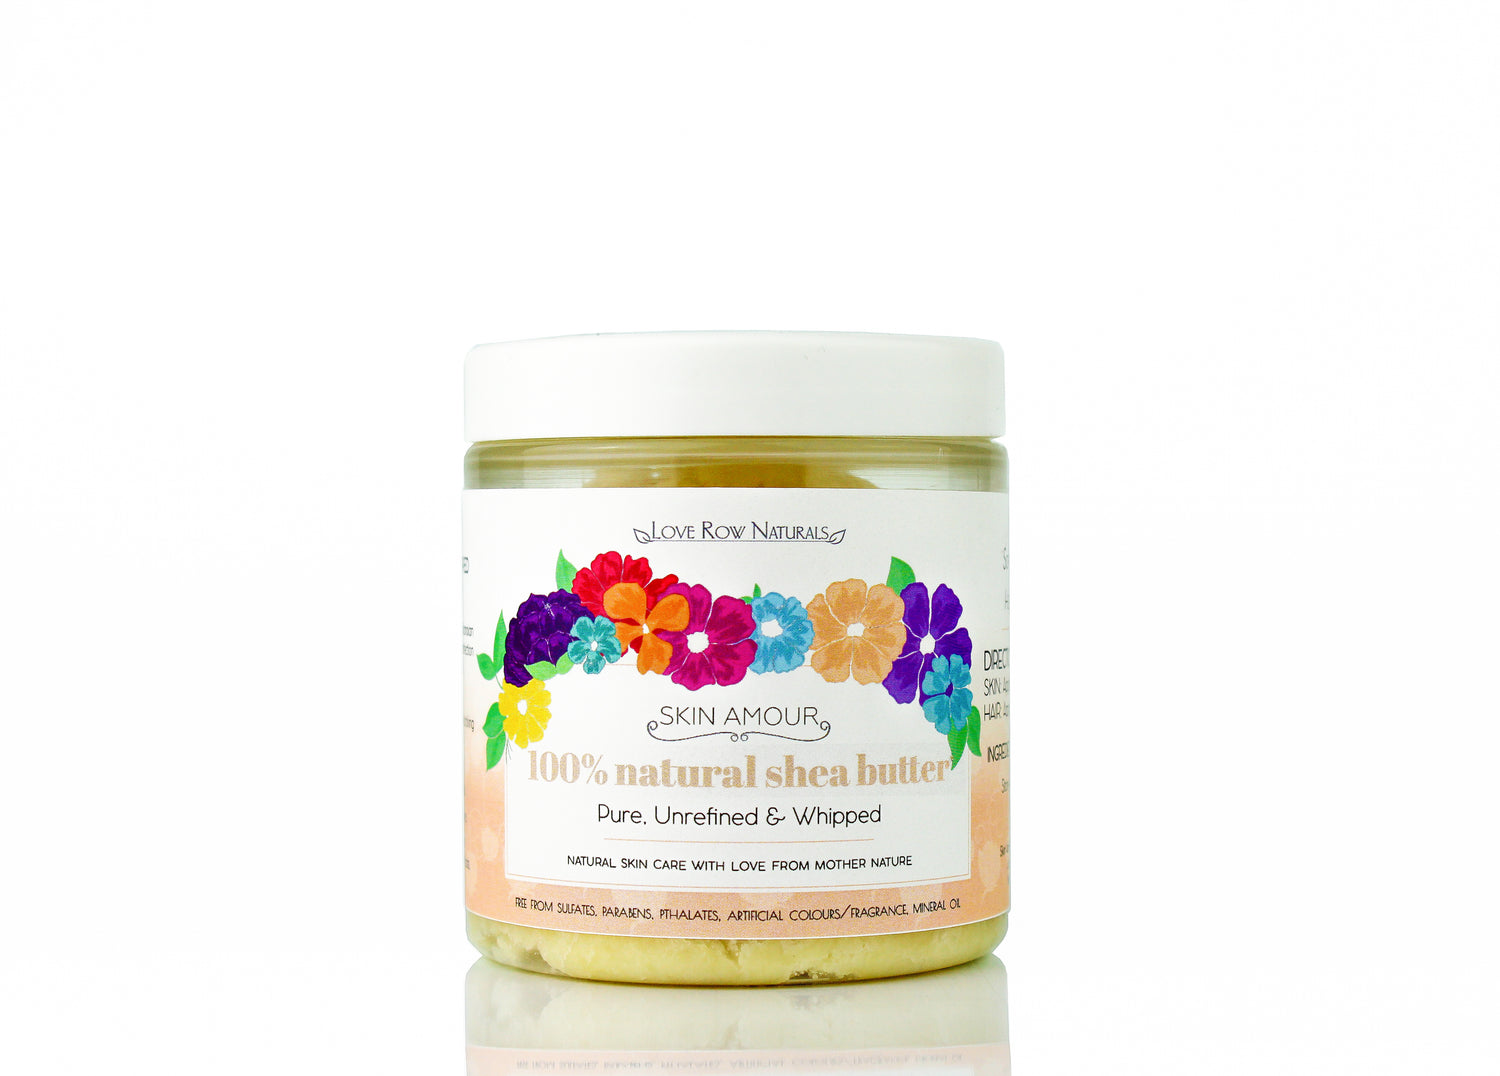 Skin Amour Soft Whipped 100% Pure Shea Butter 200g